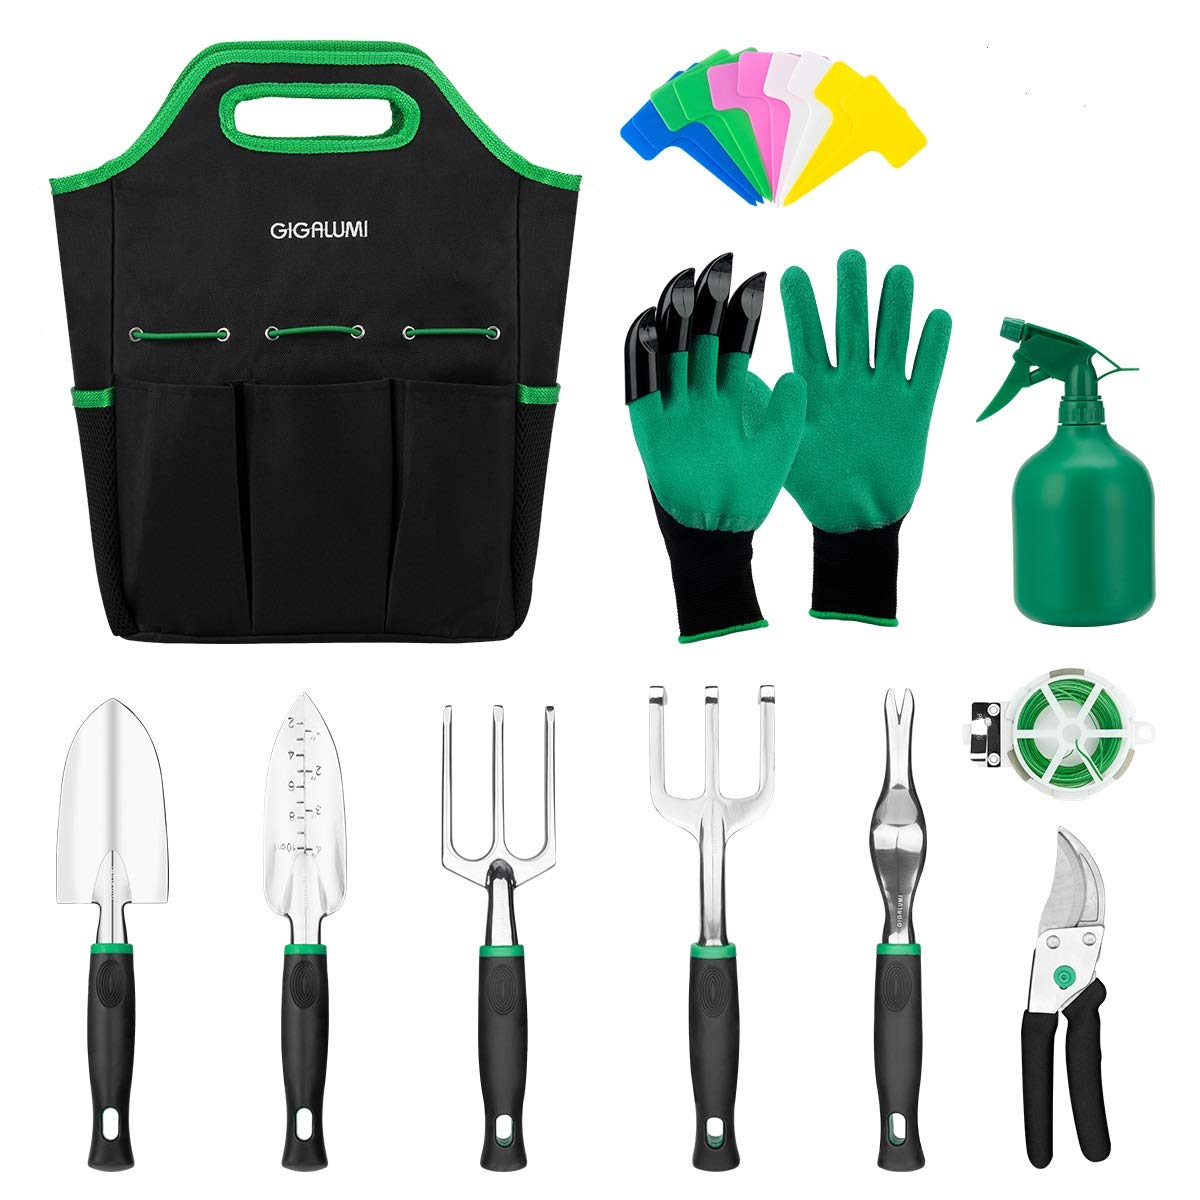 GIGALUMI 11 Piece Garden Tools Set - Gardening Tools with Garden Gloves and Garden Handbag - Gardening Gifts Tool Set with Garden Trowel Pruners and More - Aluminum Outdoor Hand Tools